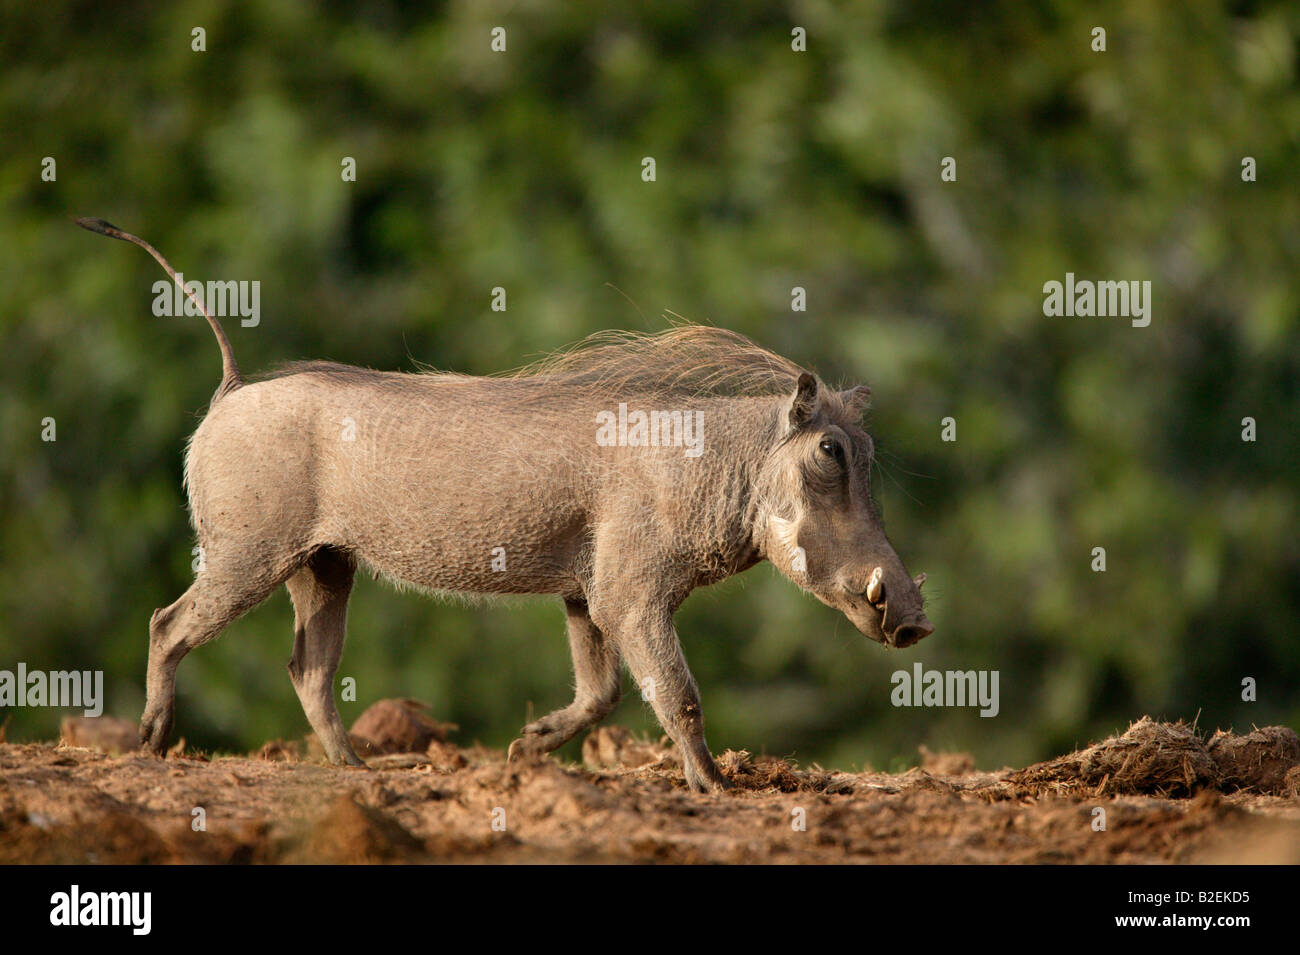 Warthog trotting with tail upright - Stock Image